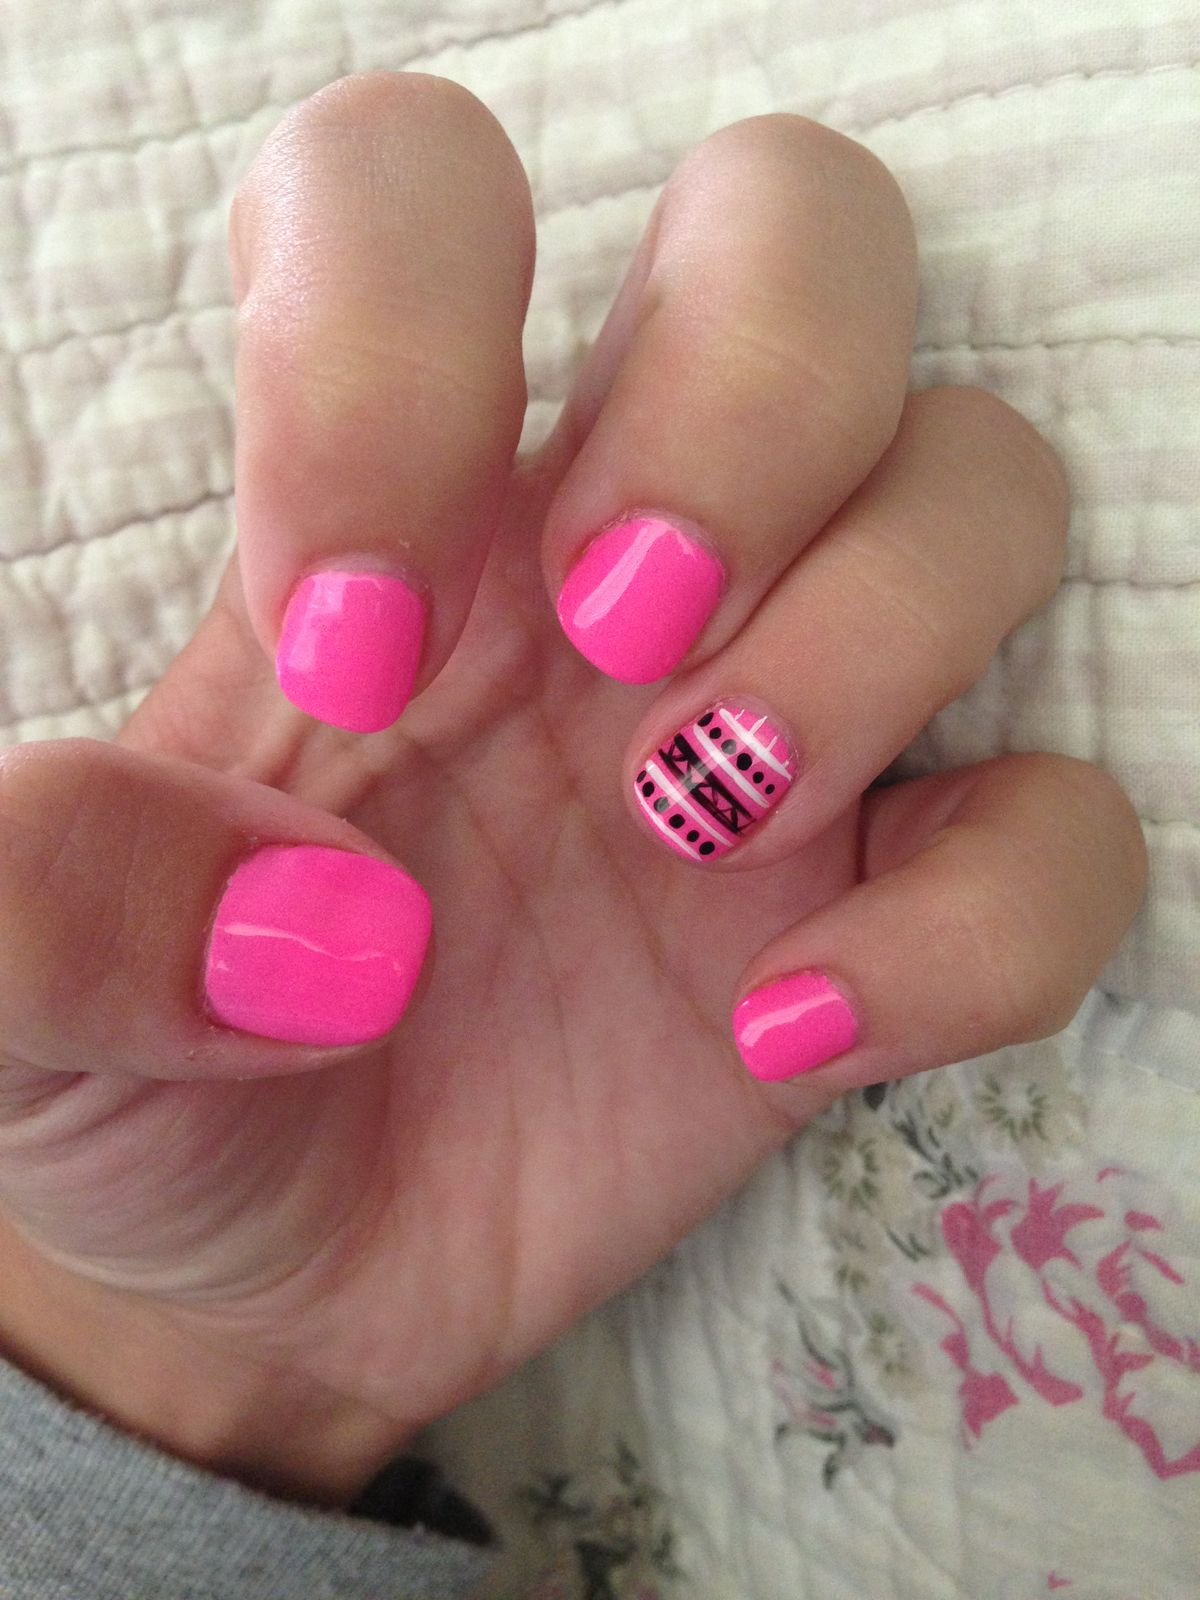 Fox Racing Acrylic Nails - More information